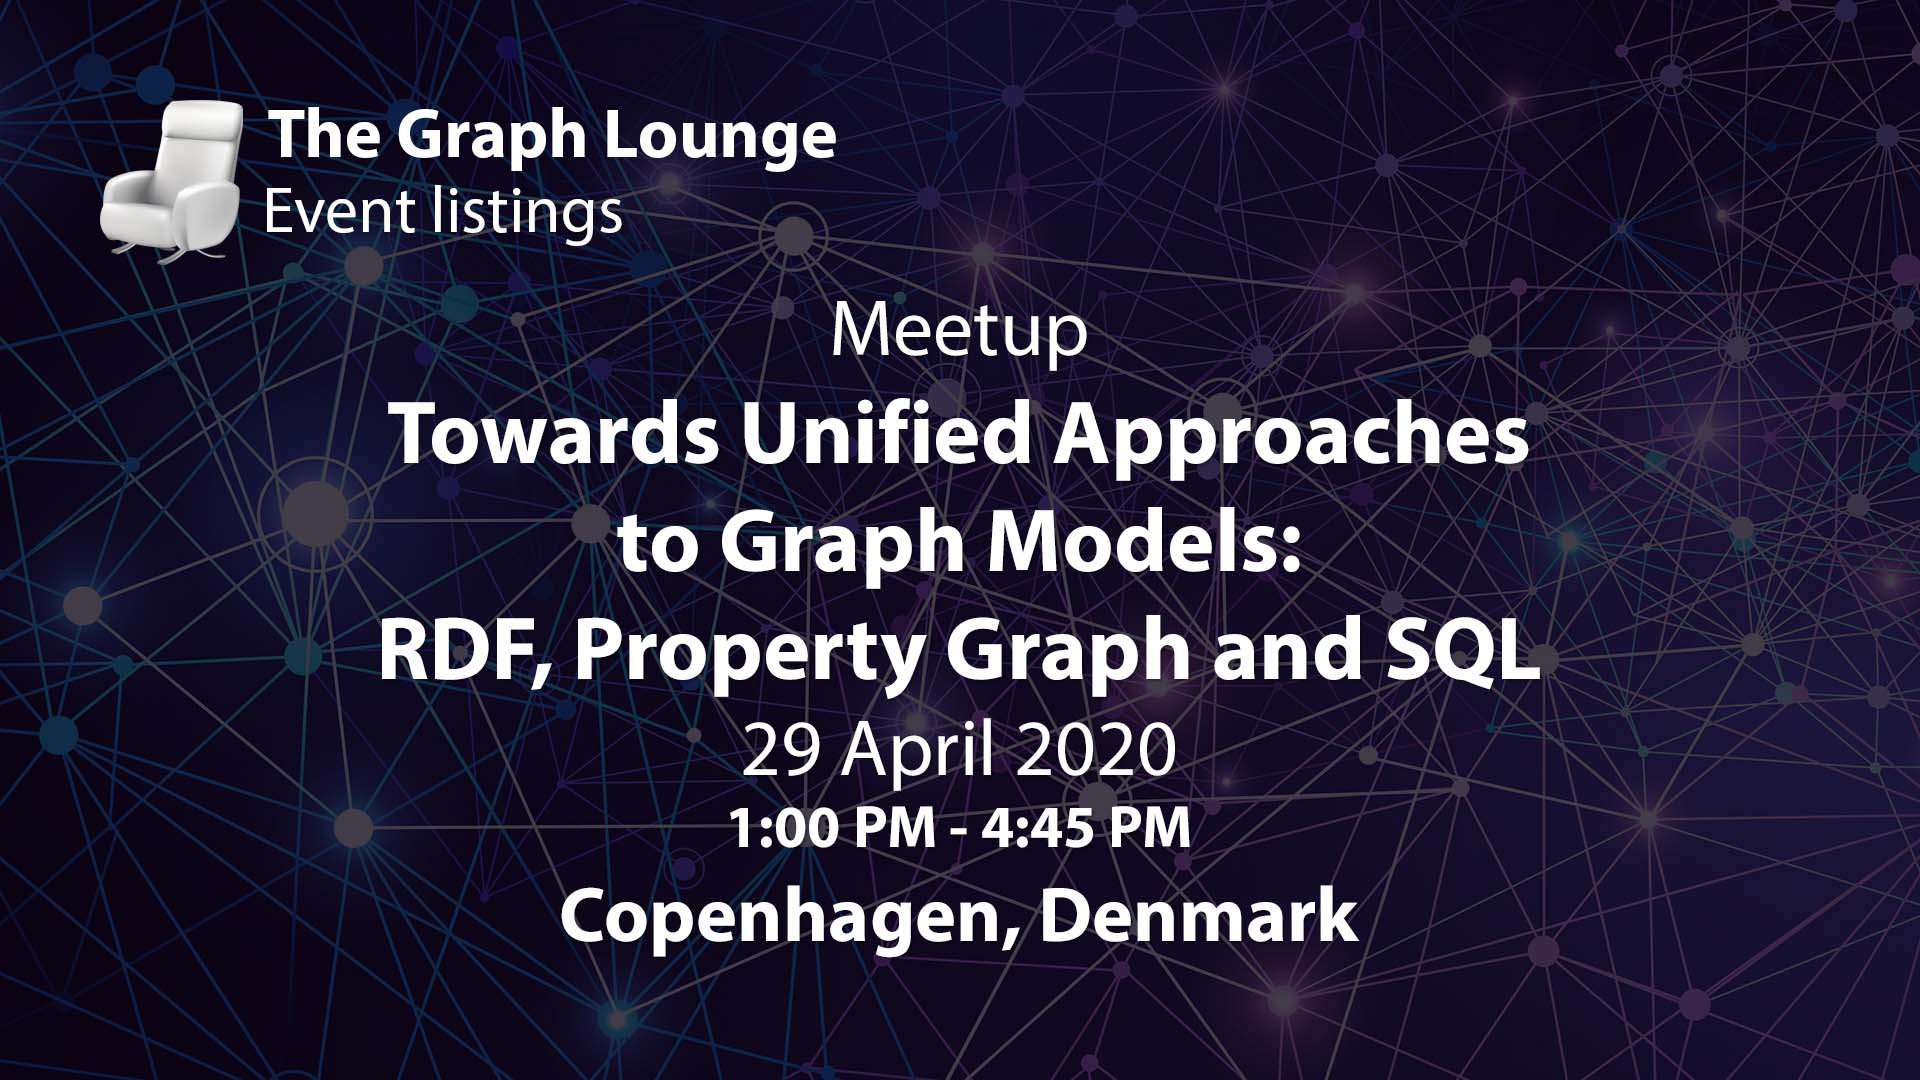 Towards Unified Approaches to Graph Models: RDF, Property Graph and SQL